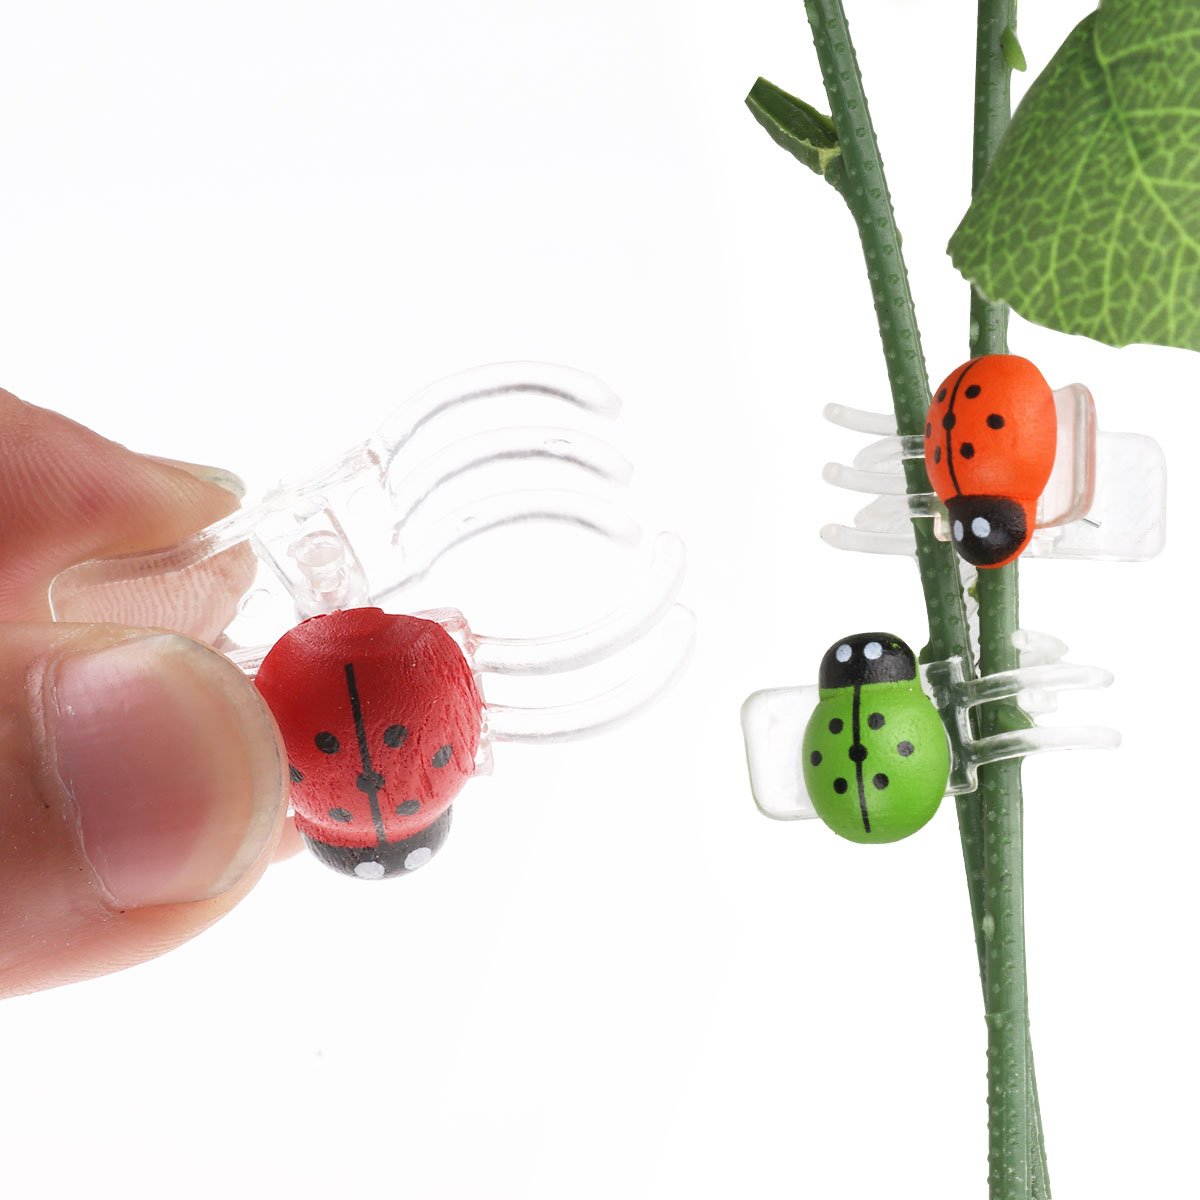 CHICTRY 30 Pack Cute Ladybug Orchid Clips Garden Flower Cymbidium Clips Plant Stem Support Clips for Supporting Stems Stalks Vines Grow Upright